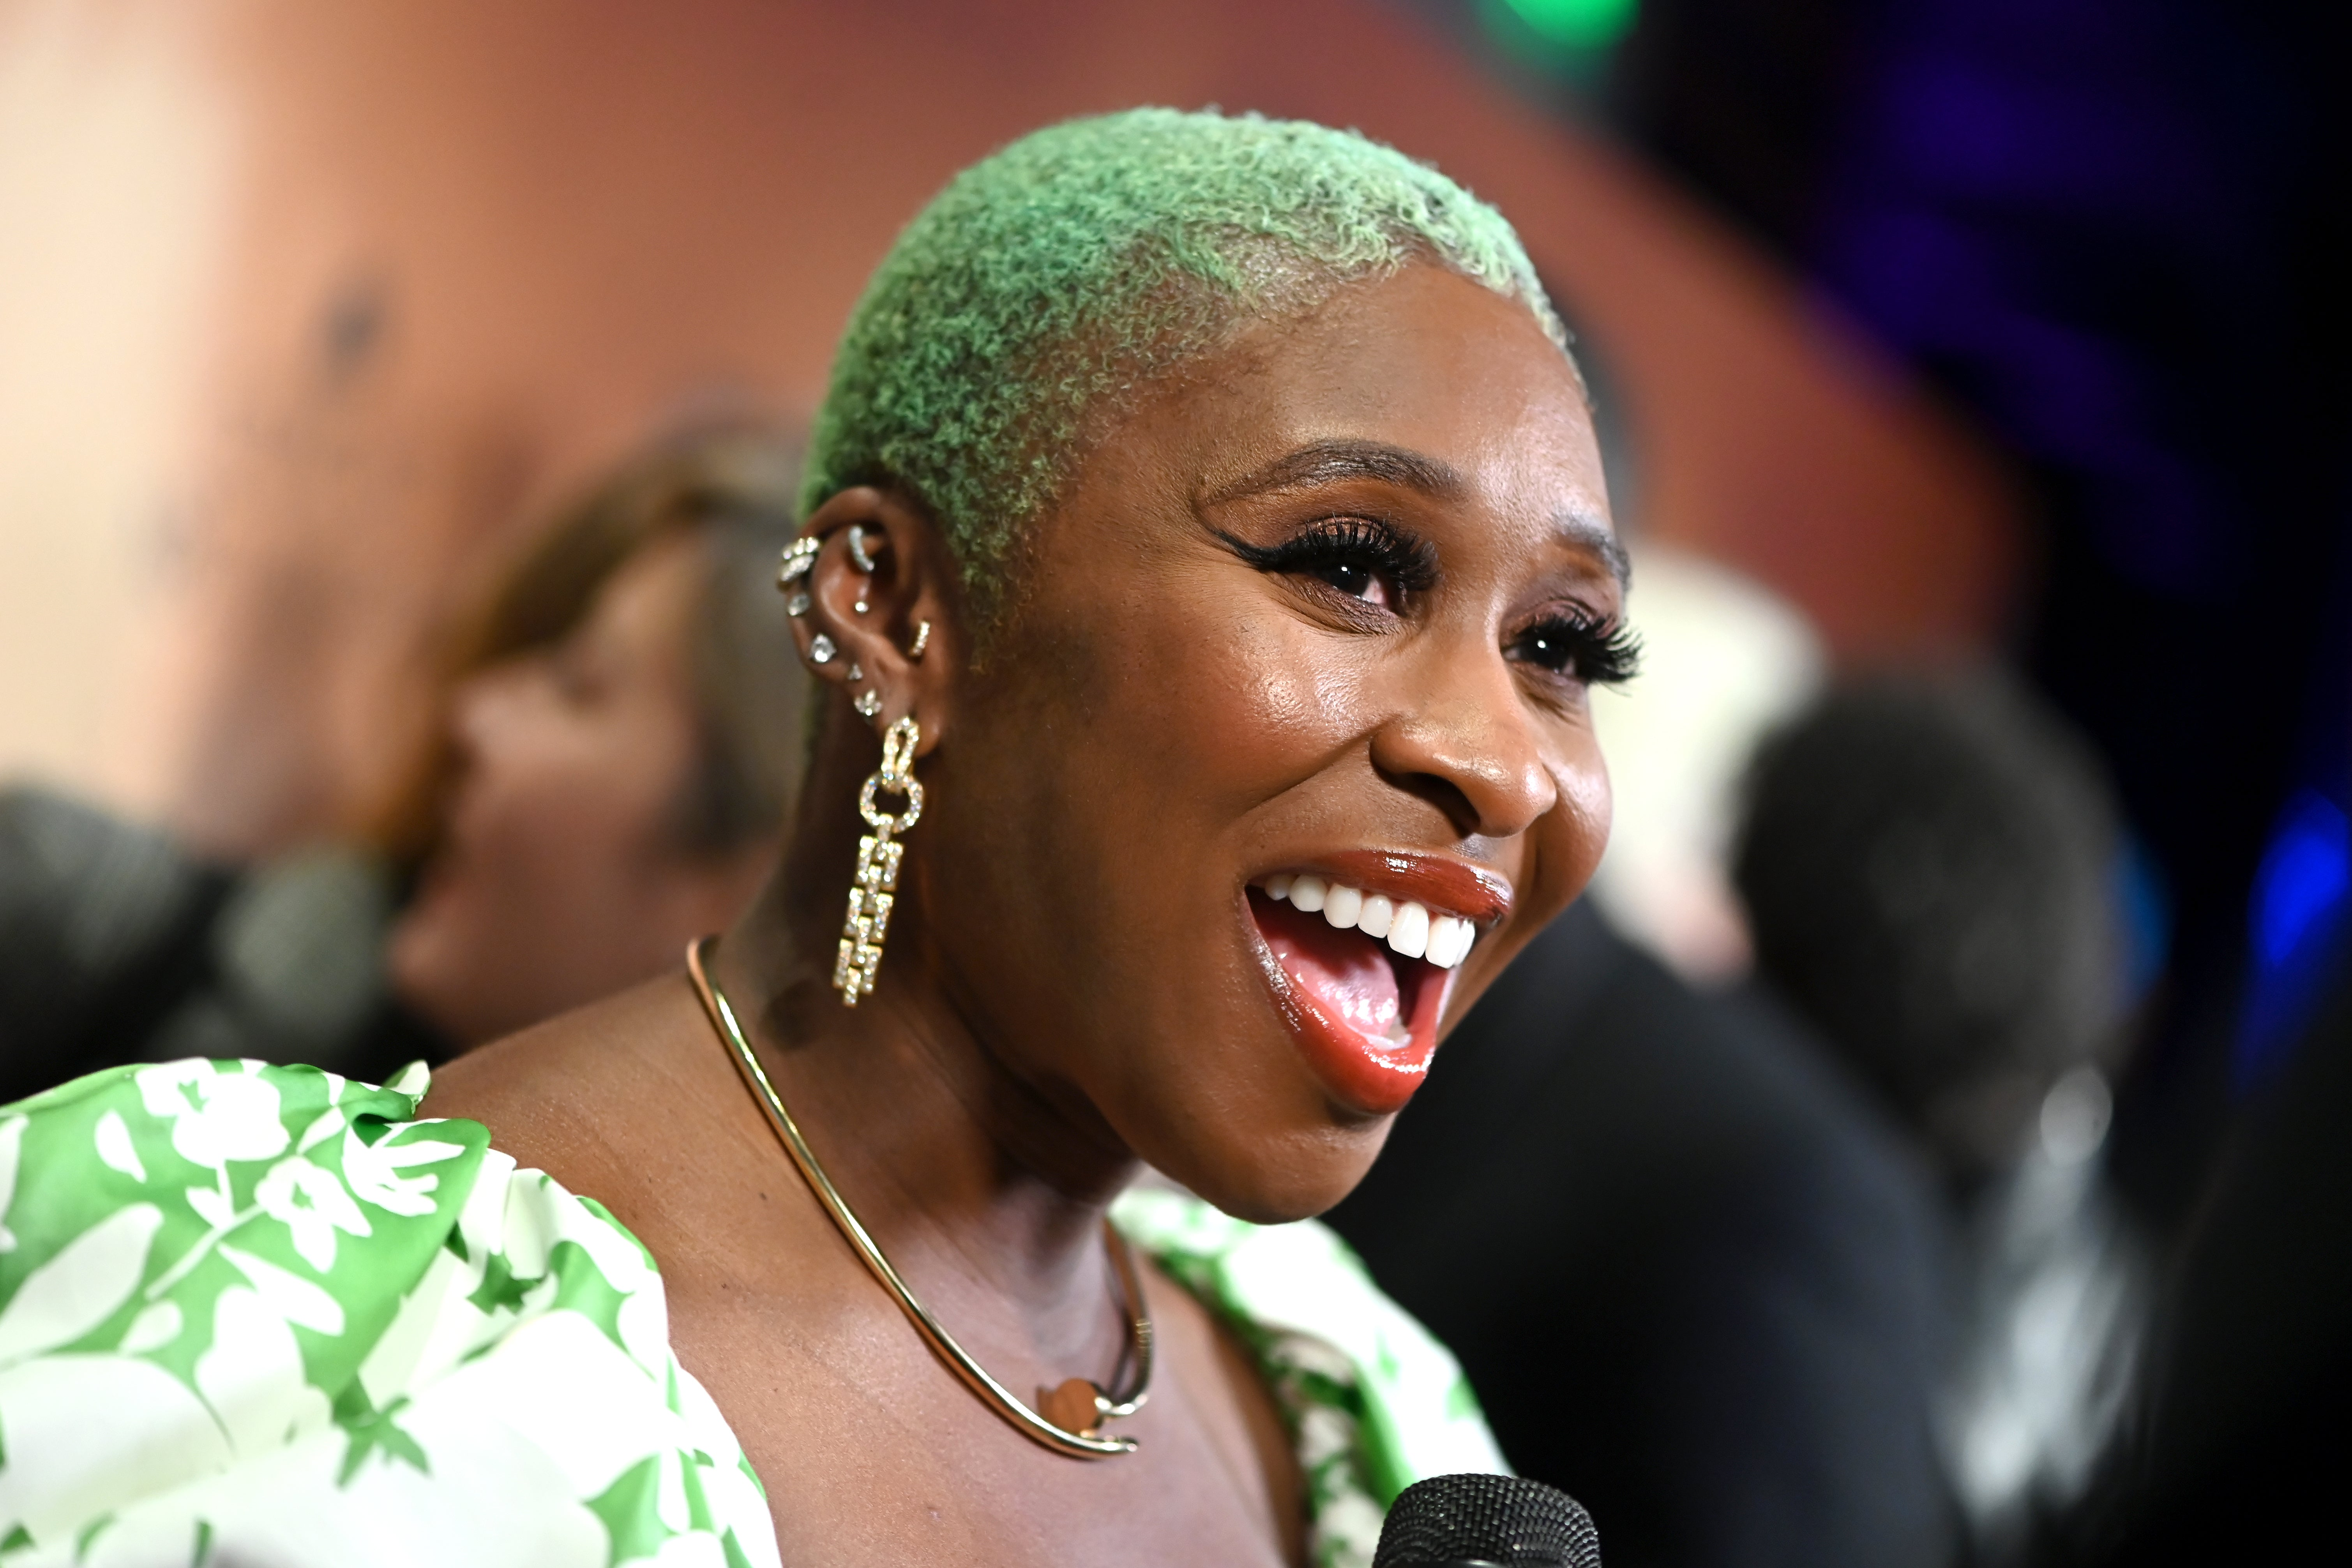 'Harriet' Star Cynthia Erivo Wants Critics To Give Film A Chance